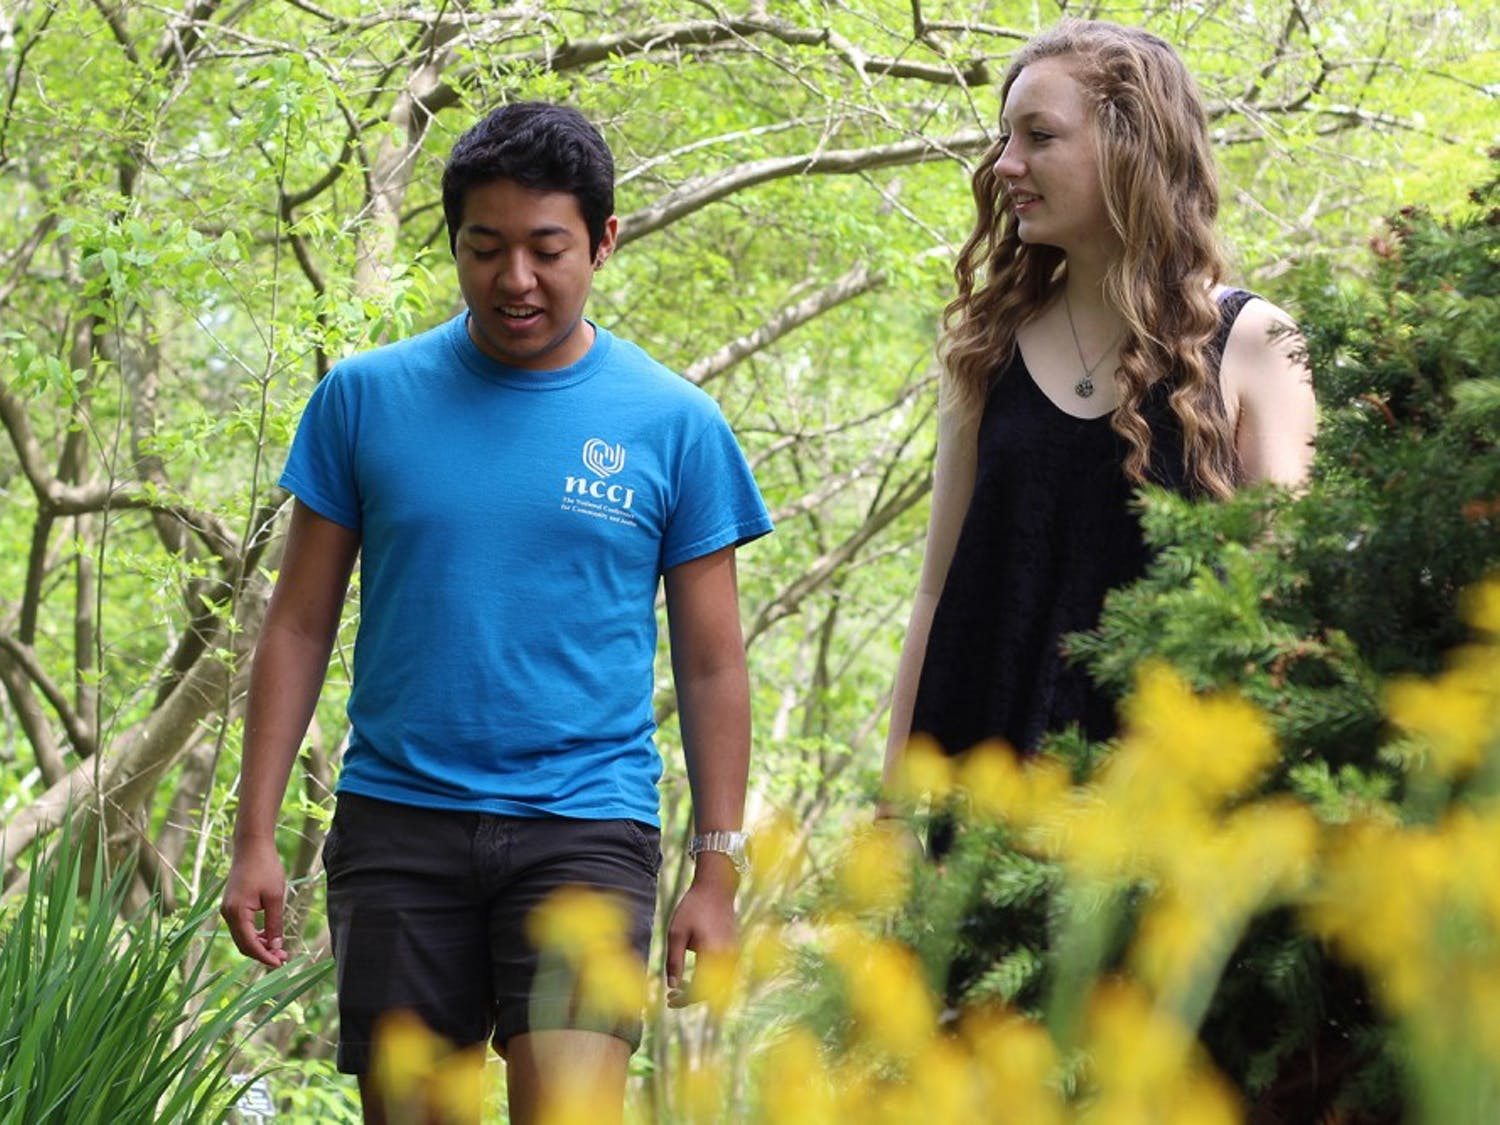 UNC-CH freshmen Cesar Rodriguez and Alex Blackburn walk through the Coker Arboretum Monday. They were close friends with Anna Smith.